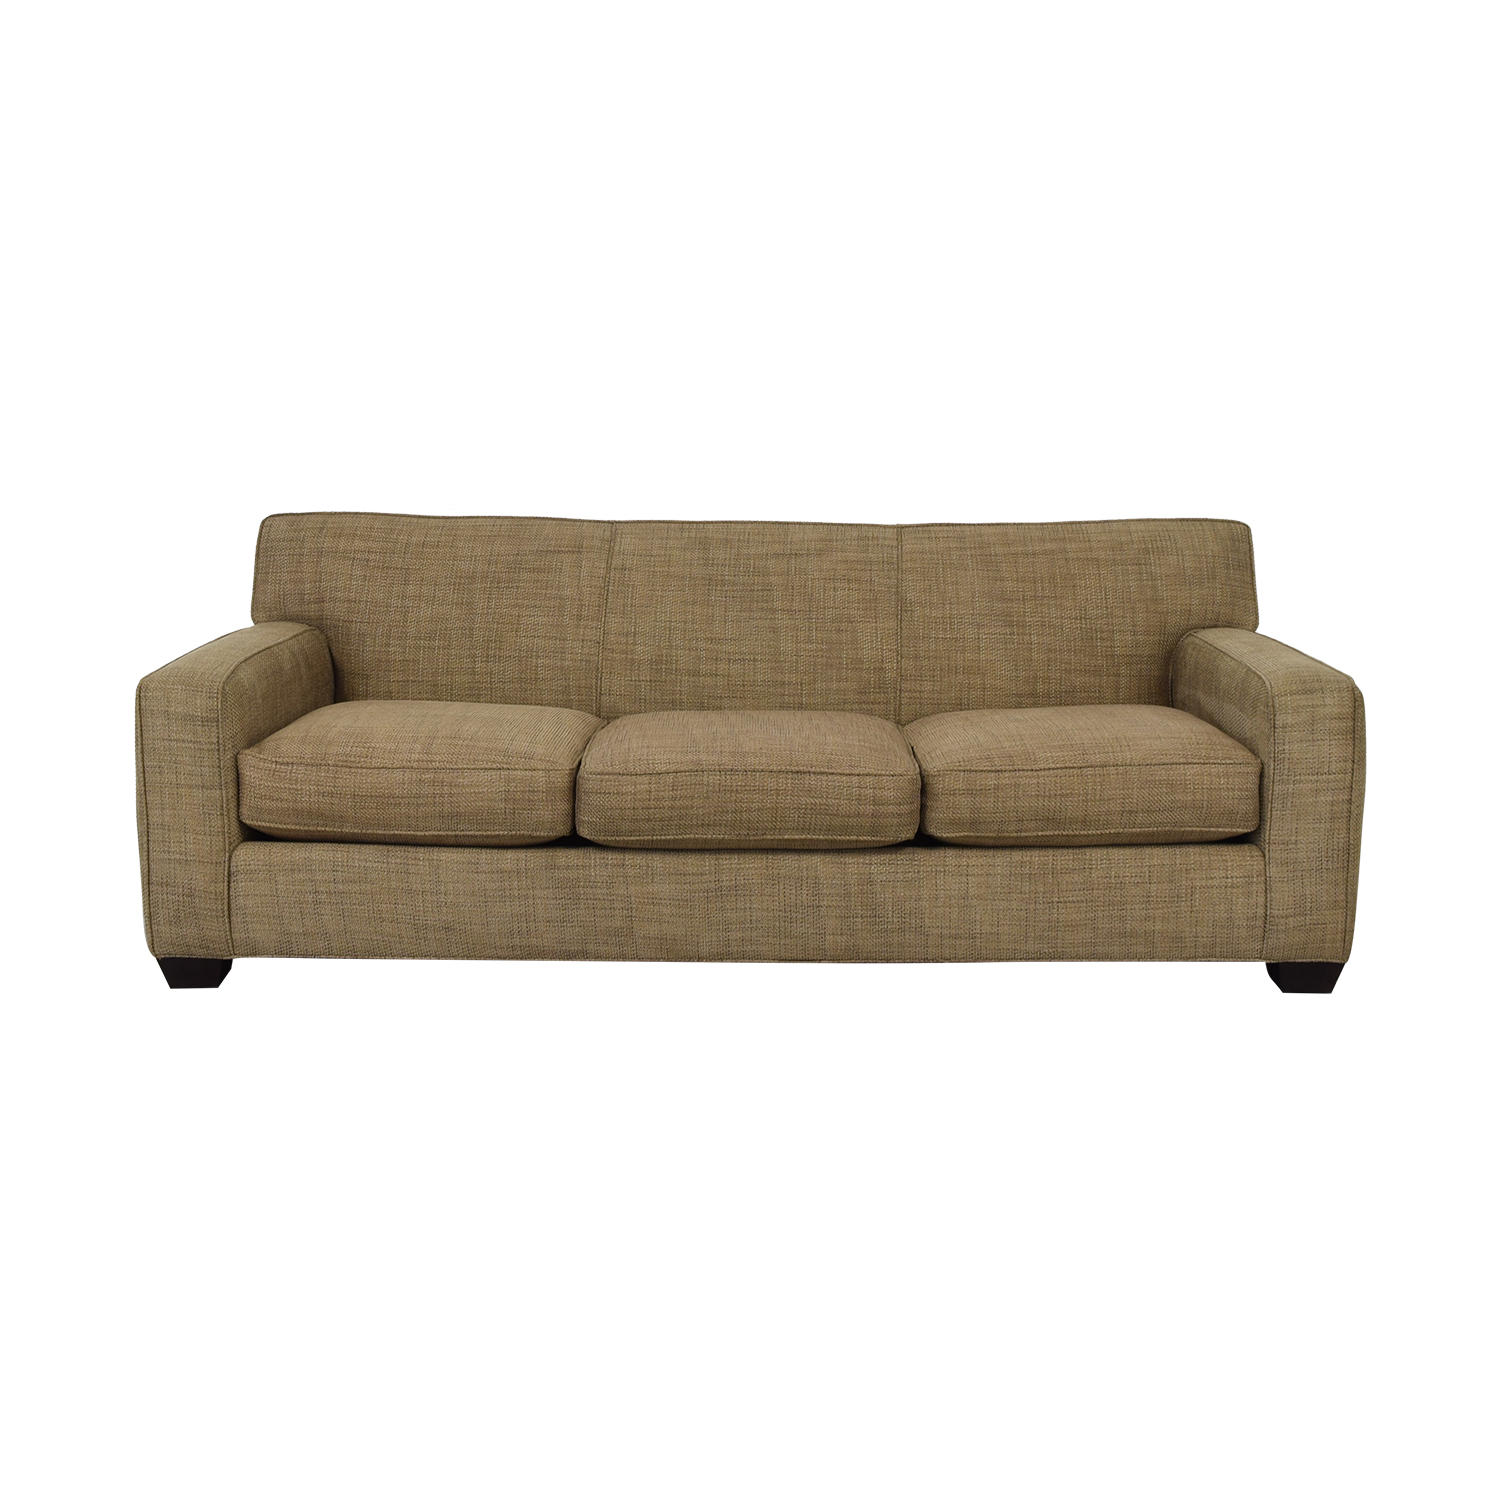 Crate & Barrel Crate & Barrel Three Cushion Sofa on sale